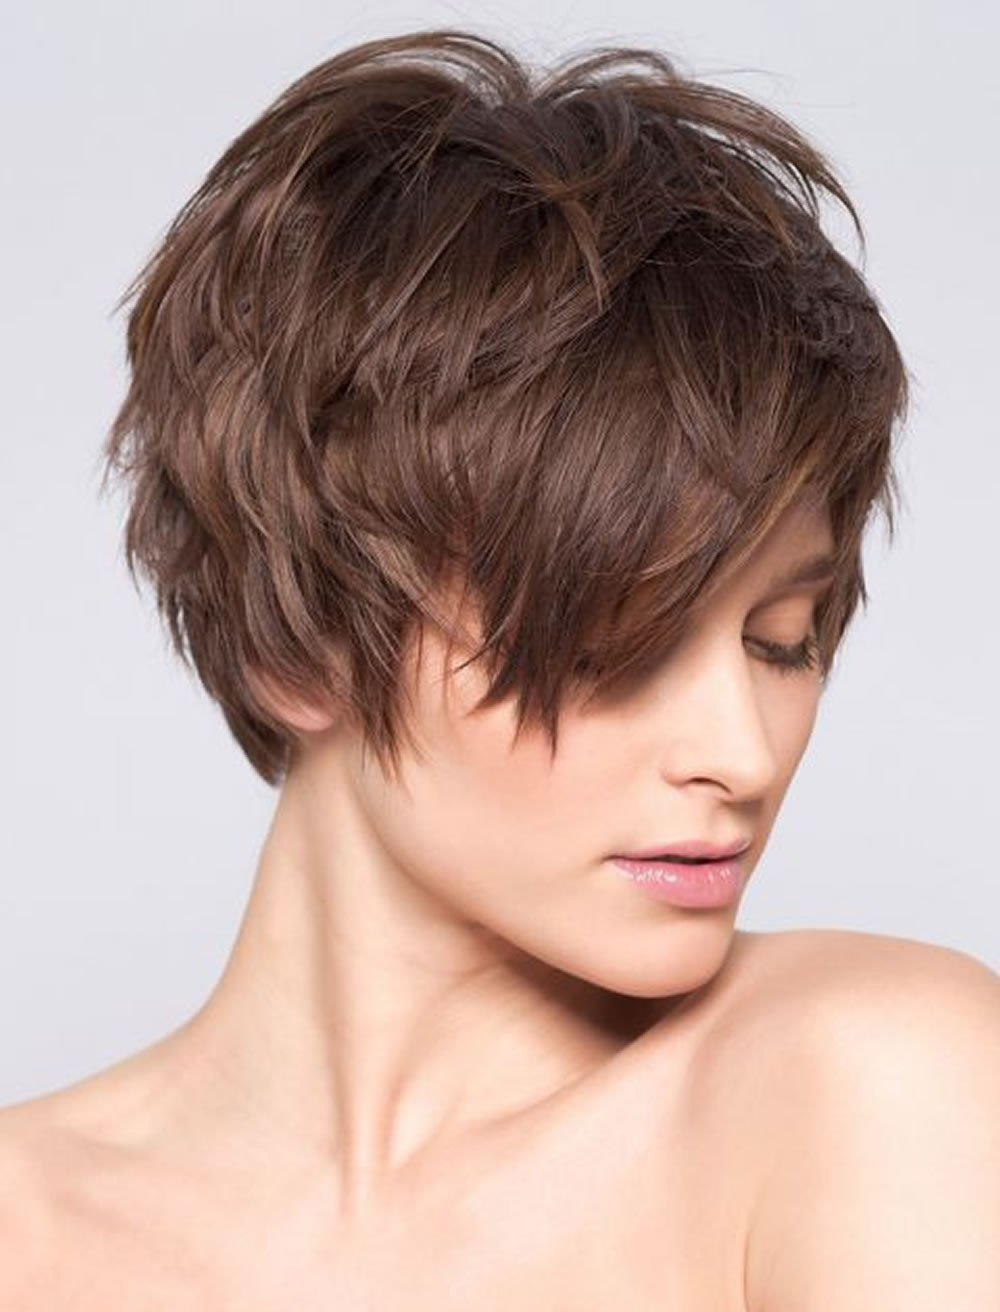 New Easy Hairstyles For Short Hair 2018 2019 Pixie Hair Cuts Ideas With Pictures